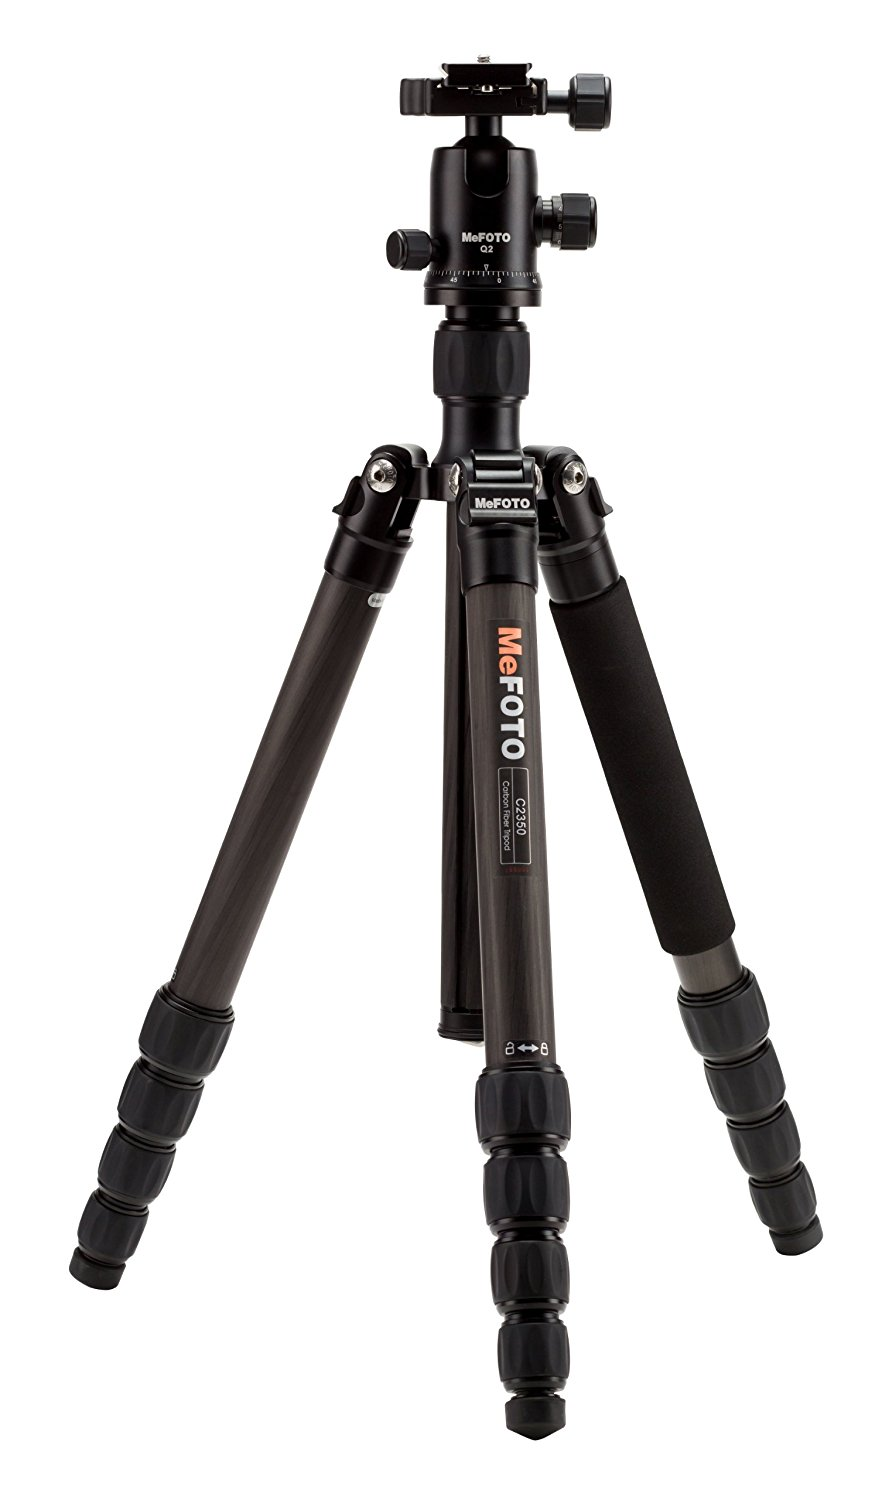 Amazon Stativ 10 Best Camera Tripod Reviews 2019 Zomei Induro Manfrotto Gitzo